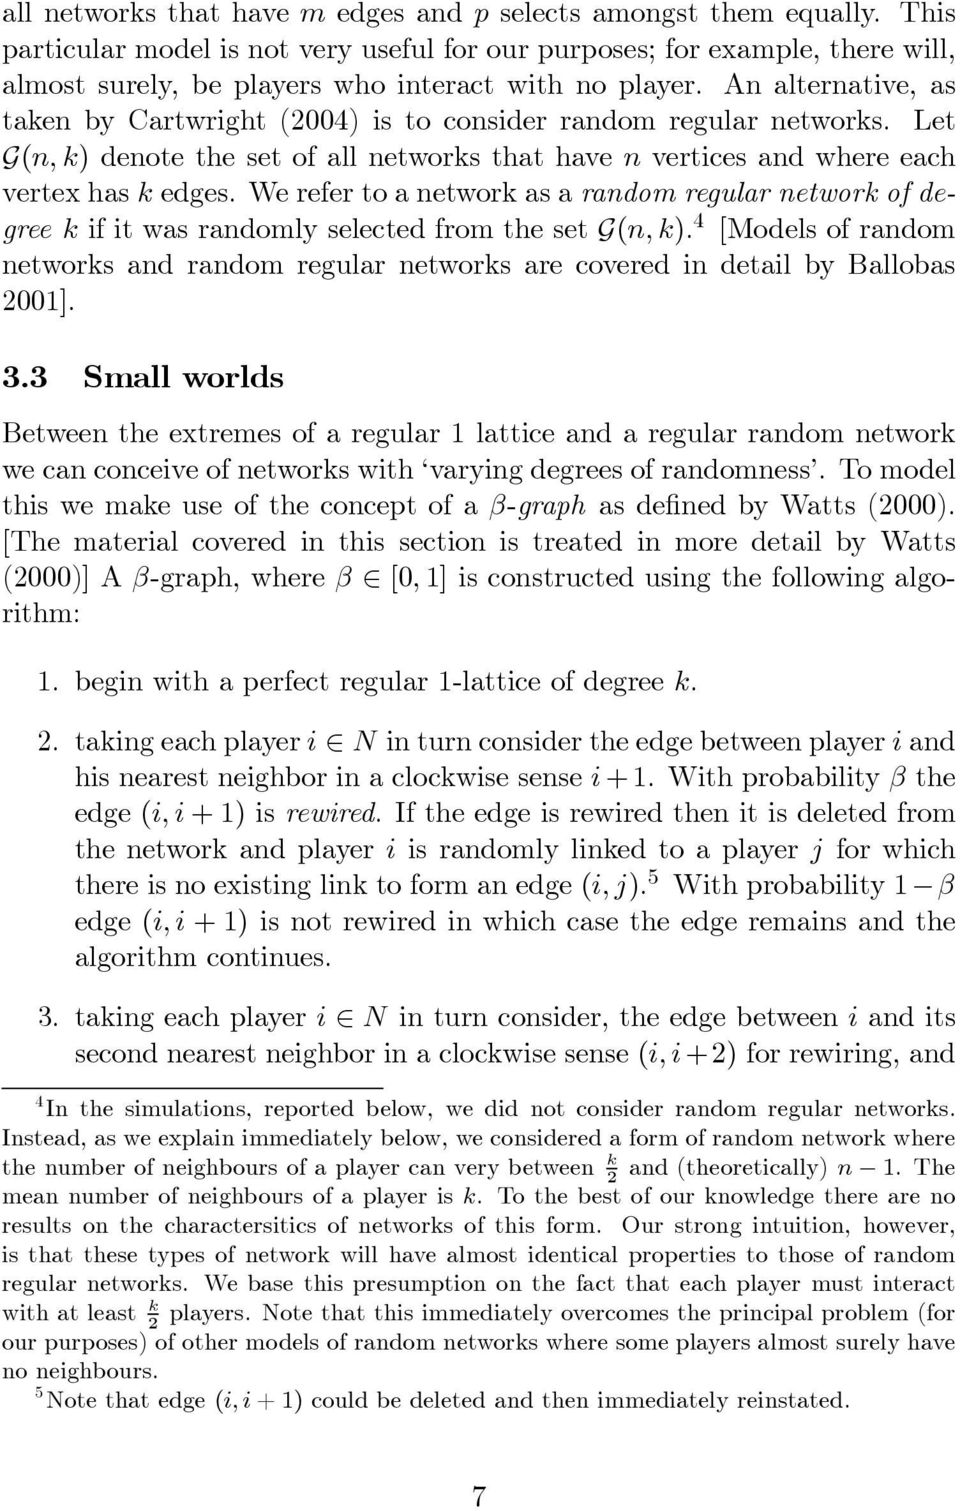 An alternative, as taken by Cartwright (2004) is to consider random regular networks. Let G(n, k) denote the set of all networks that have n vertices and where each vertex has k edges.